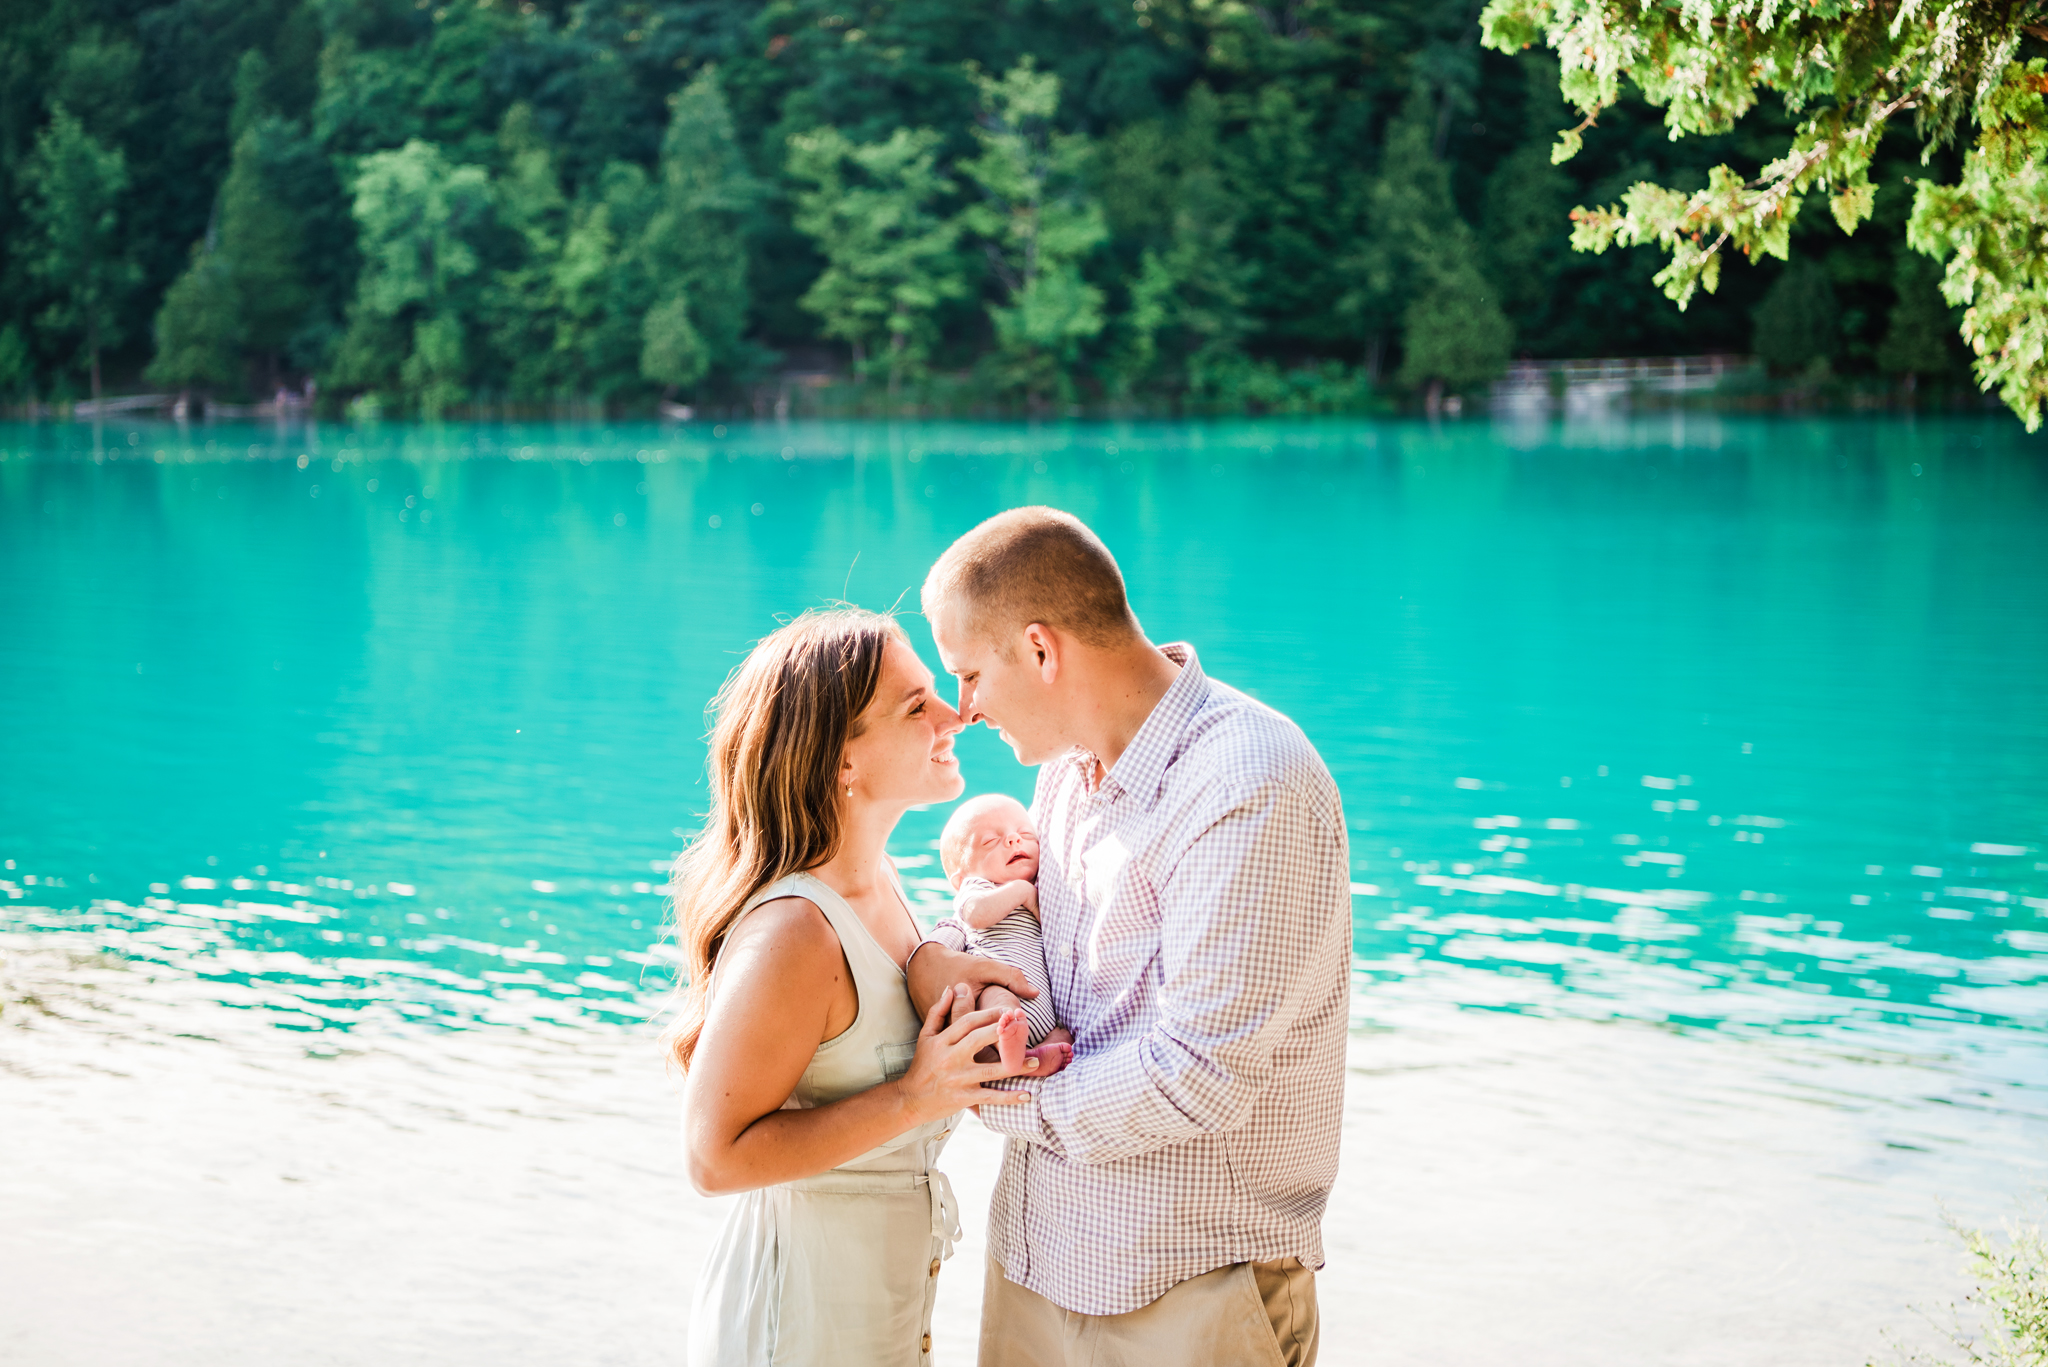 Green_Lakes_State_Park_Central_NY_Family_Session_JILL_STUDIO_Rochester_NY_Photographer_DSC_4863.jpg